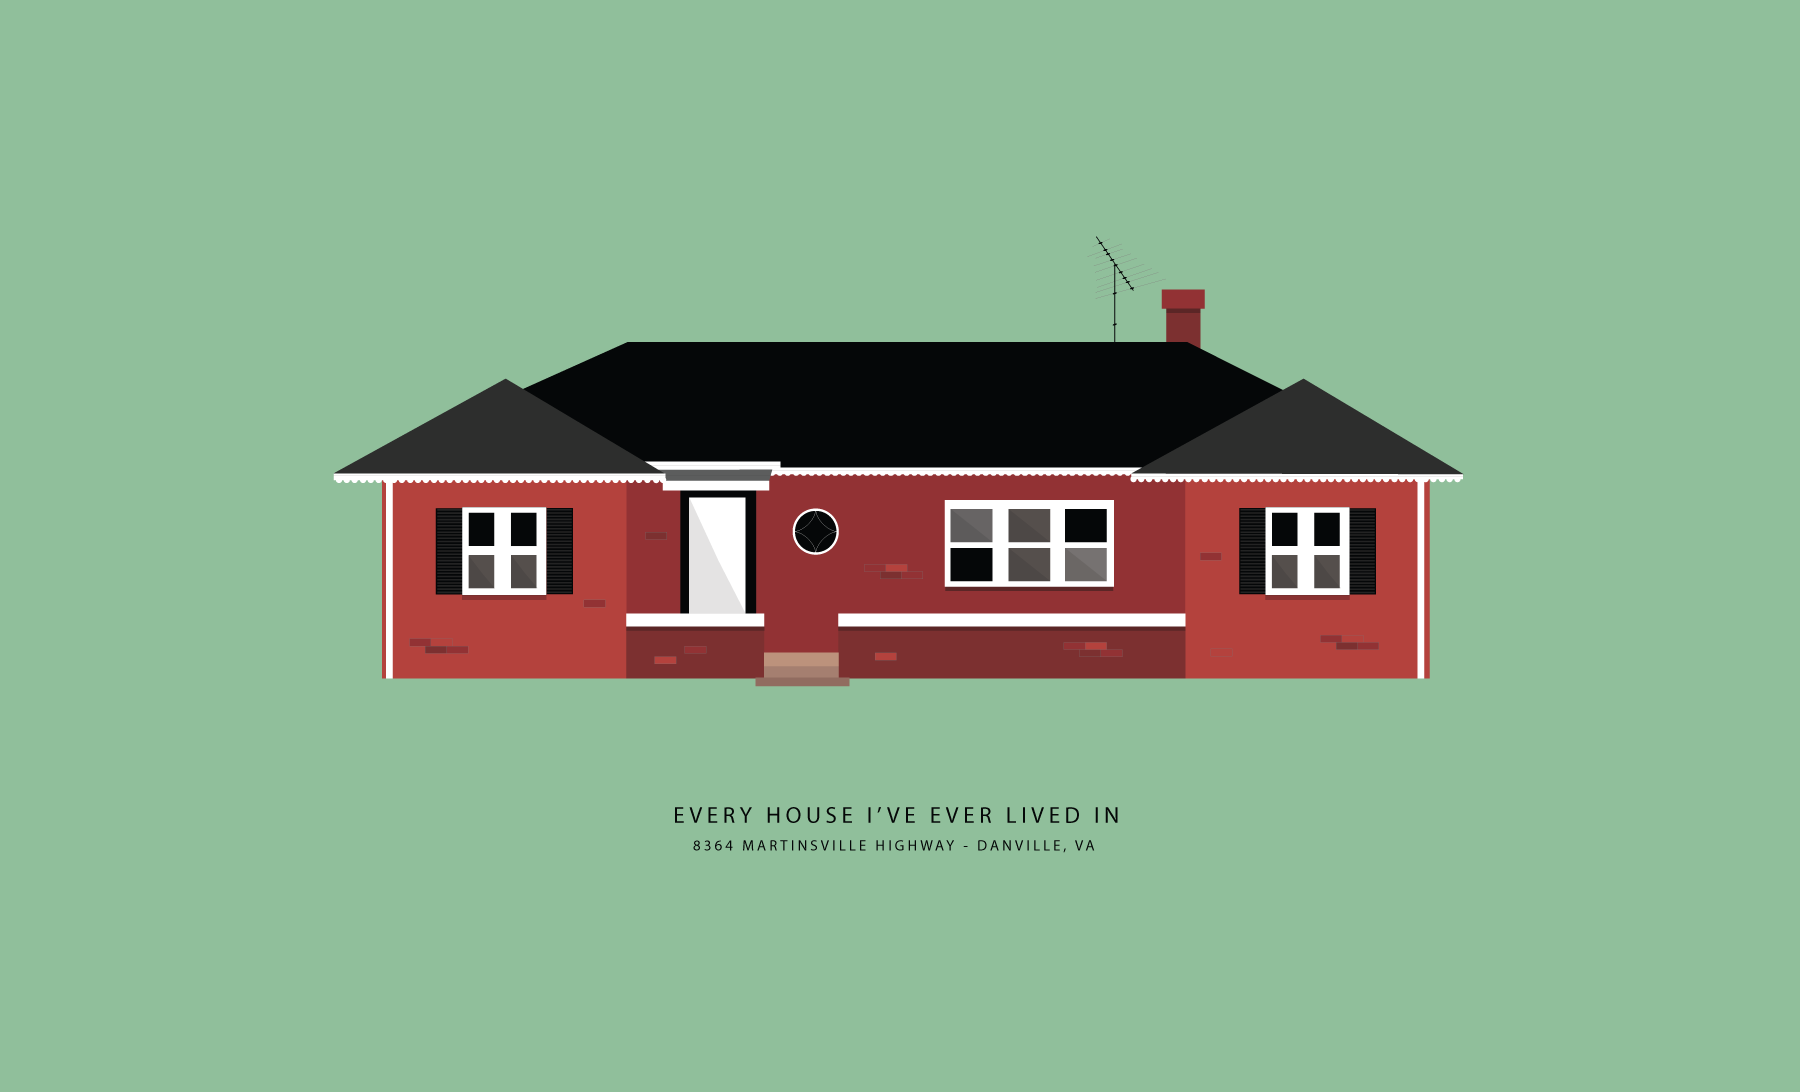 Every House  - Ever wondered what every house I've ever lived in looks like? Well, I illustrated them.